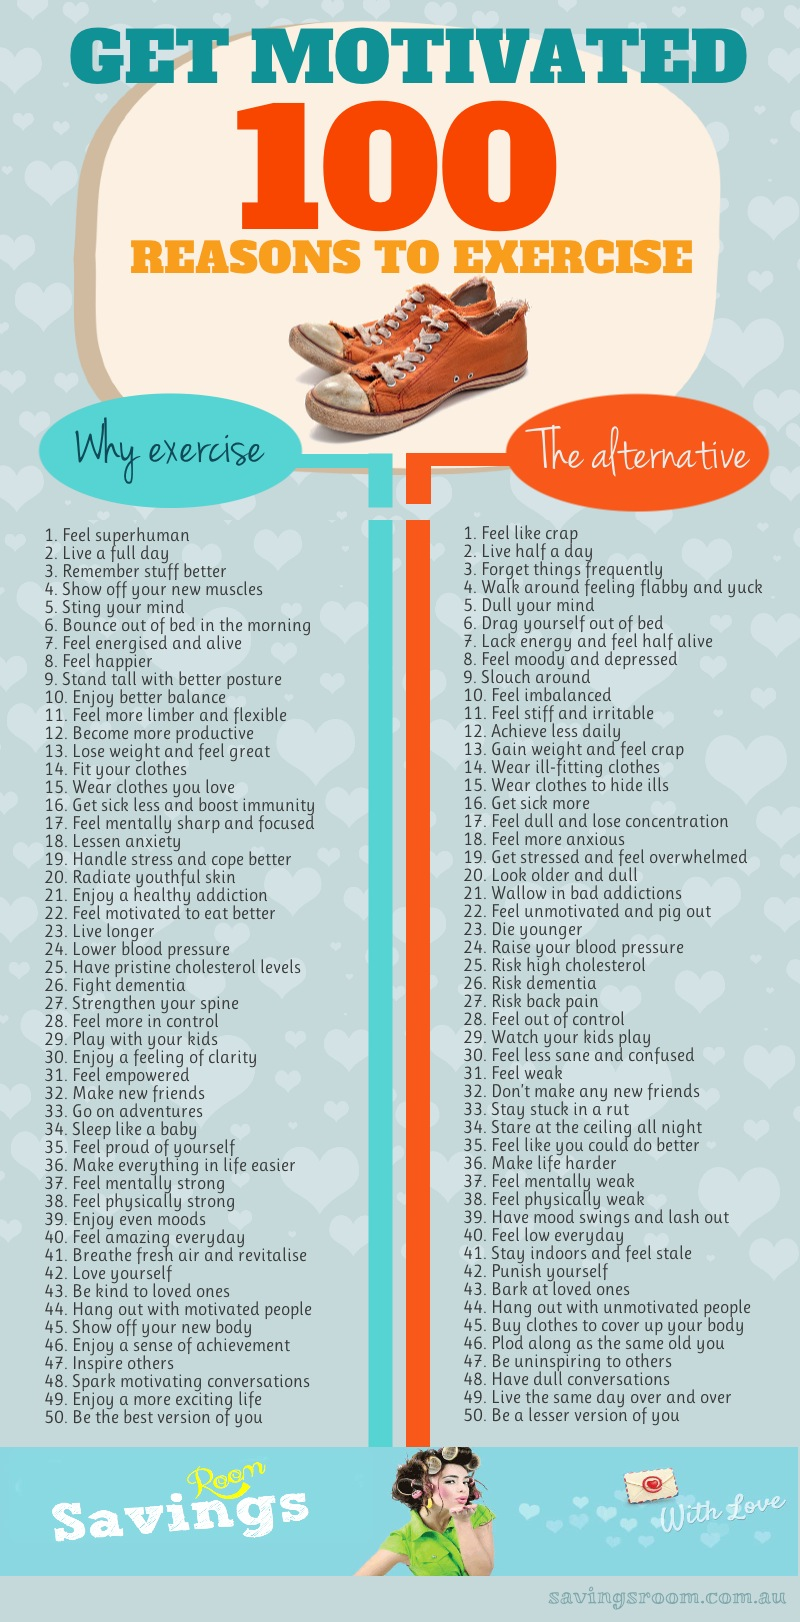 Get_motivated_100_Reasons_To_Exercise_2014